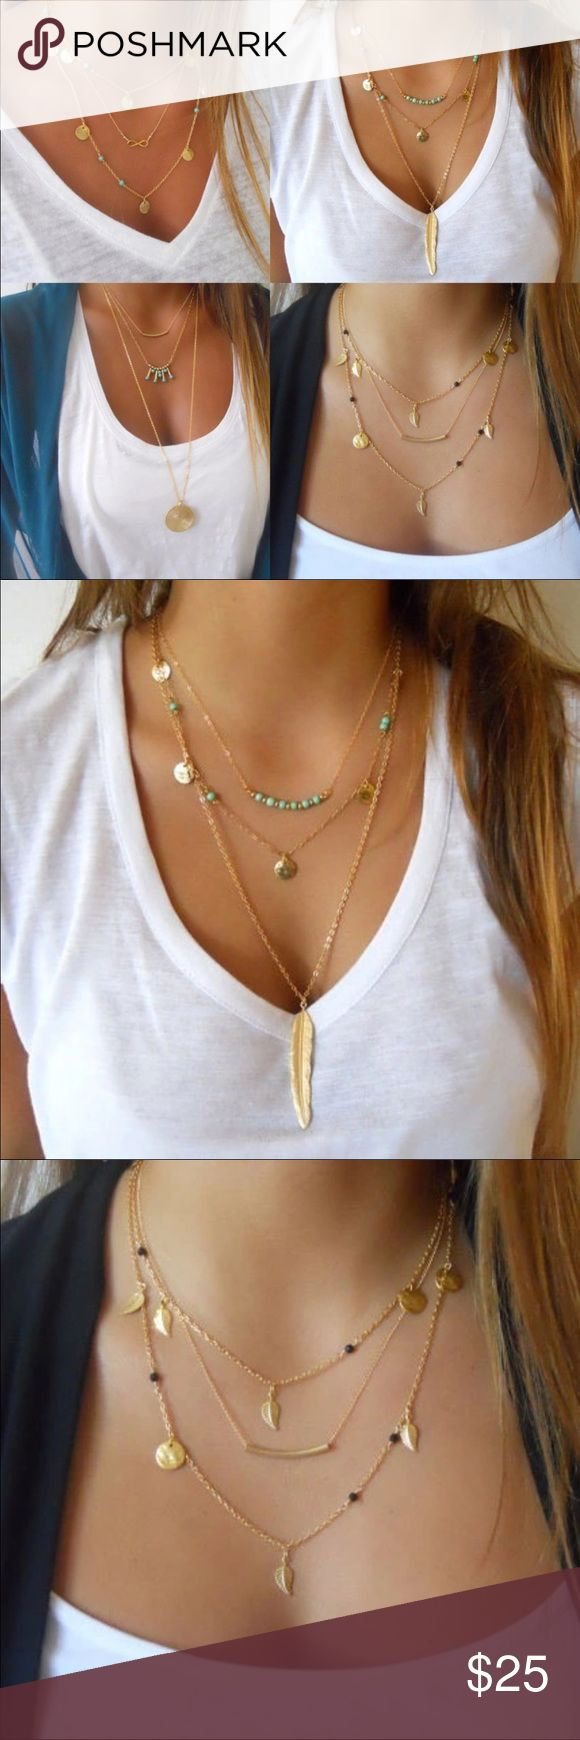 Fashion Boho's Simple 3 Layer Gold Plated Chains. 3 Layer gold plated Chain Necklaces. 6 in stock.: 2 Turquoise beads Feather Pendant Tassel Necklaces, 2 turquoise beads pendant tassel necklaces and 2 black beads pendant tassel necklaces. $25 each. Please tell me which one you want 💛💛💛. Jewelry Bracelets